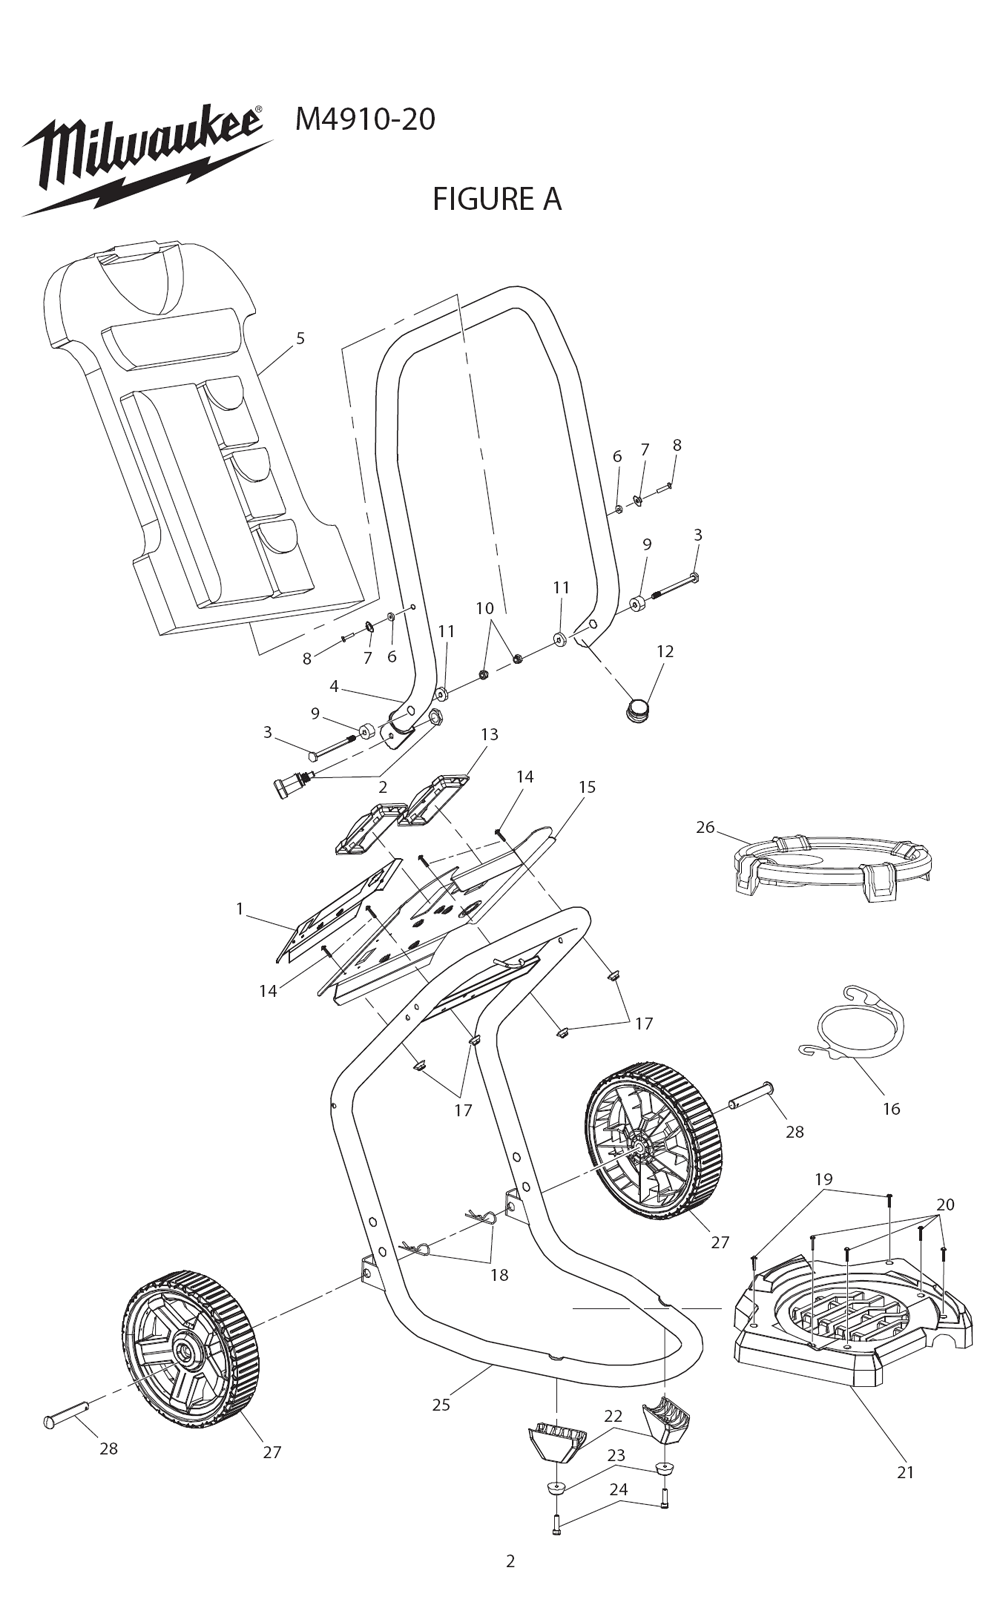 Buy Milwaukee M4910 20 Airless Finish Paint Sprayer Replacement Tool Schematic Parts